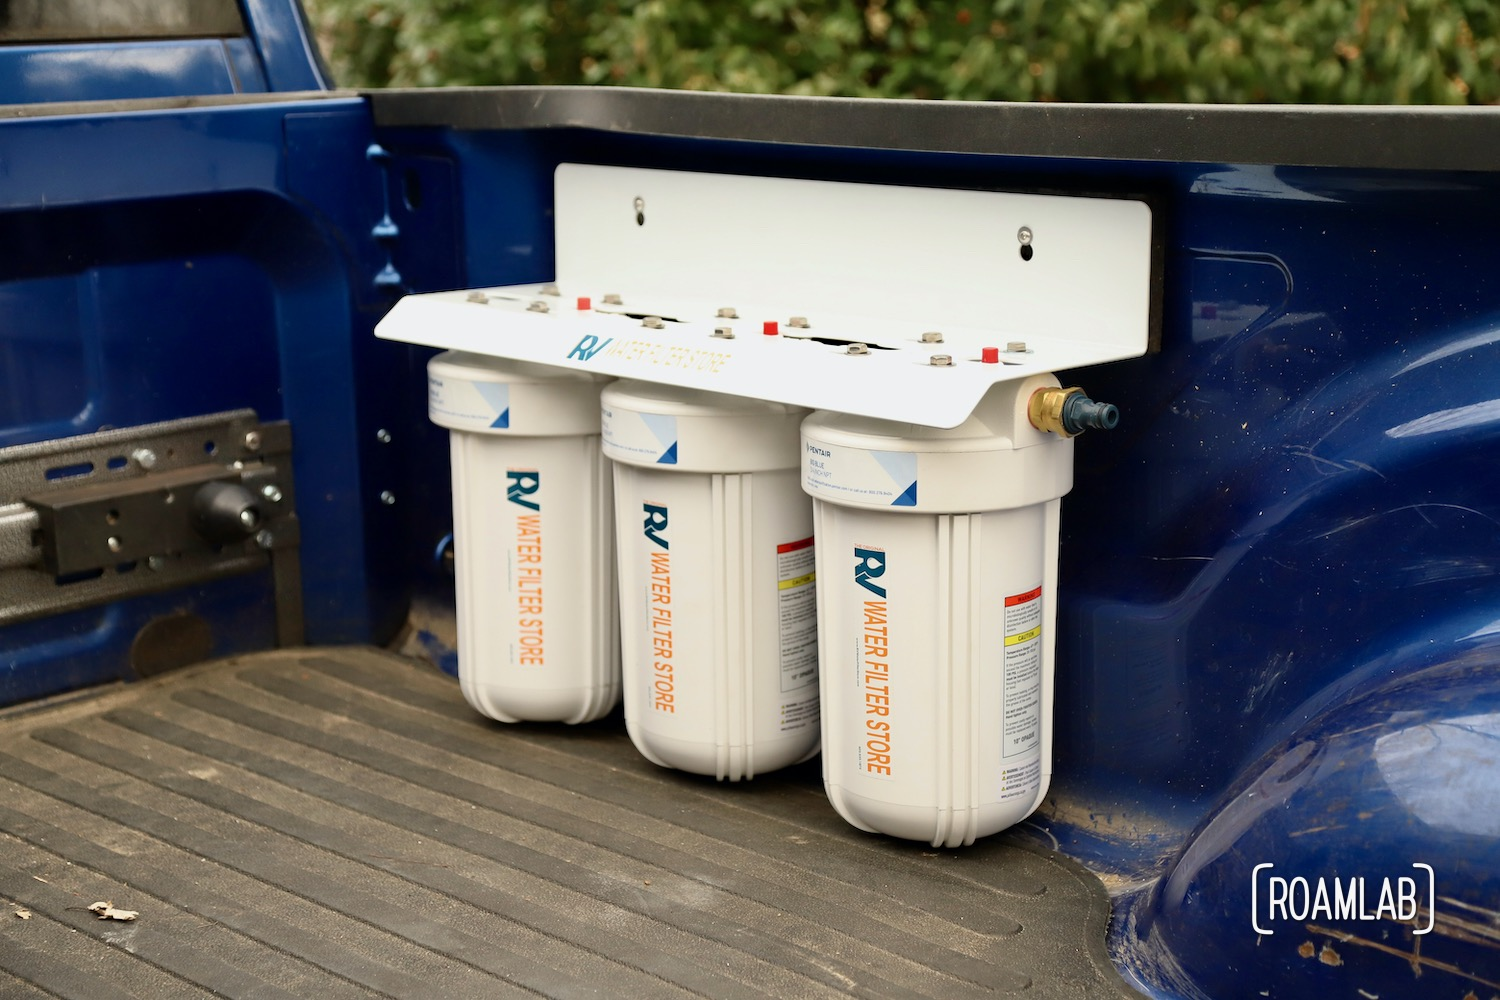 Large three canister water filtration system mounted to the passenger side of a truck bed.